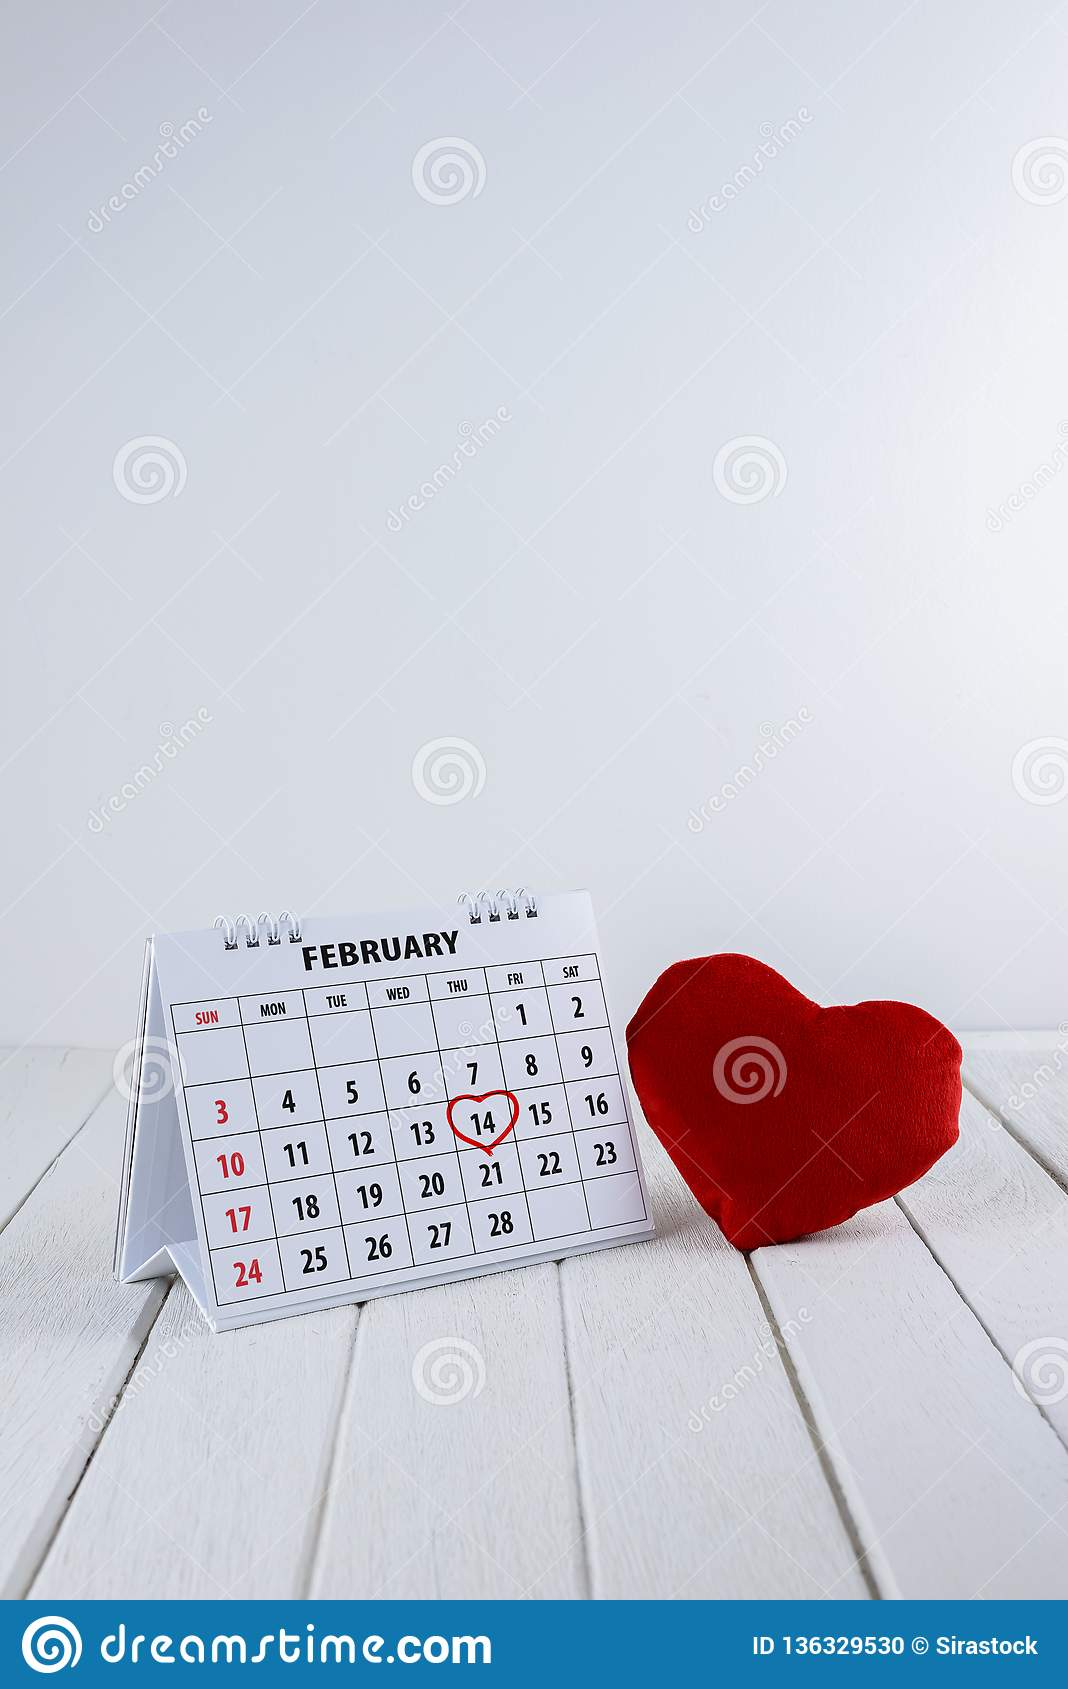 5d0a95042a43 Calendar Page With A Red Hand Written Heart Highlight On February 14 ...